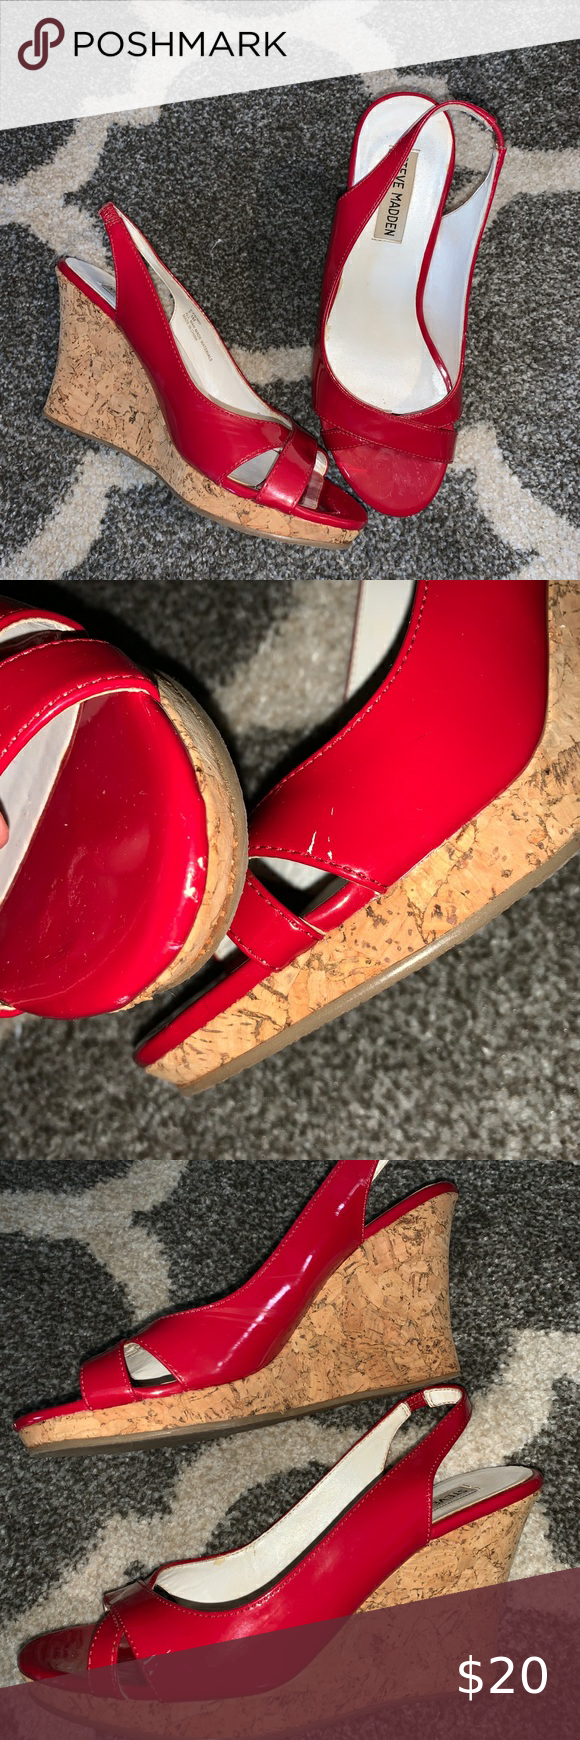 Christmas Hours 2020 Pics4 3/$25** GUC Steve Madden wedge sandals sz 7.5 in 2020 | Red wedge